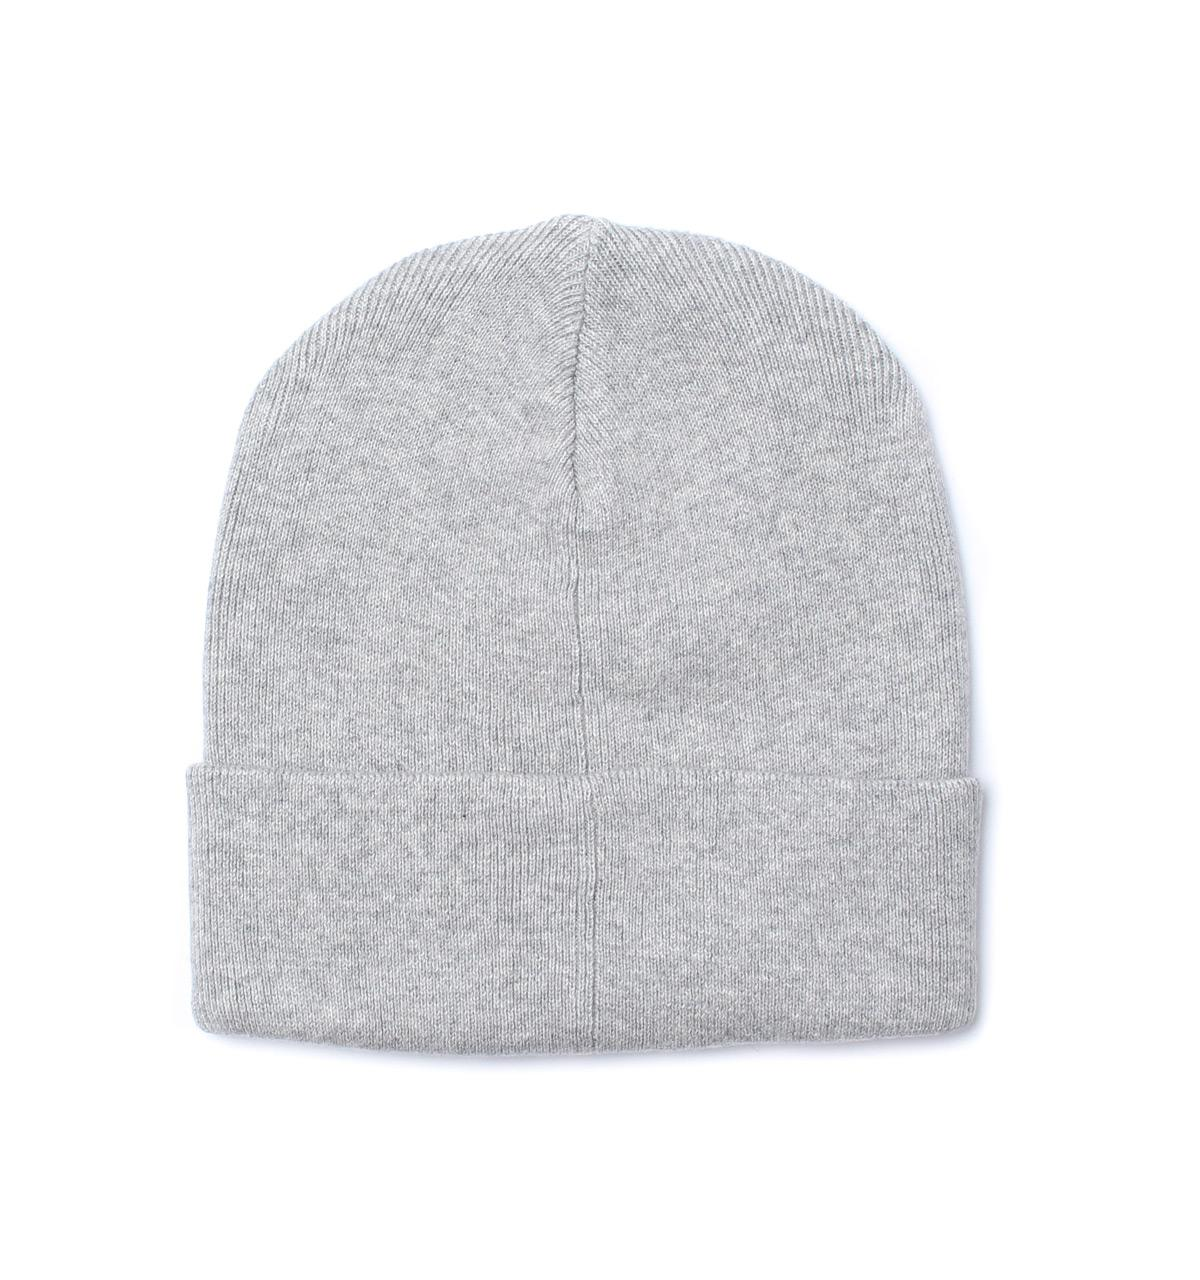 Lyst - Polo Ralph Lauren Rugby Grey Fold Over Jersey Beanie Hat in ... bcab180c808